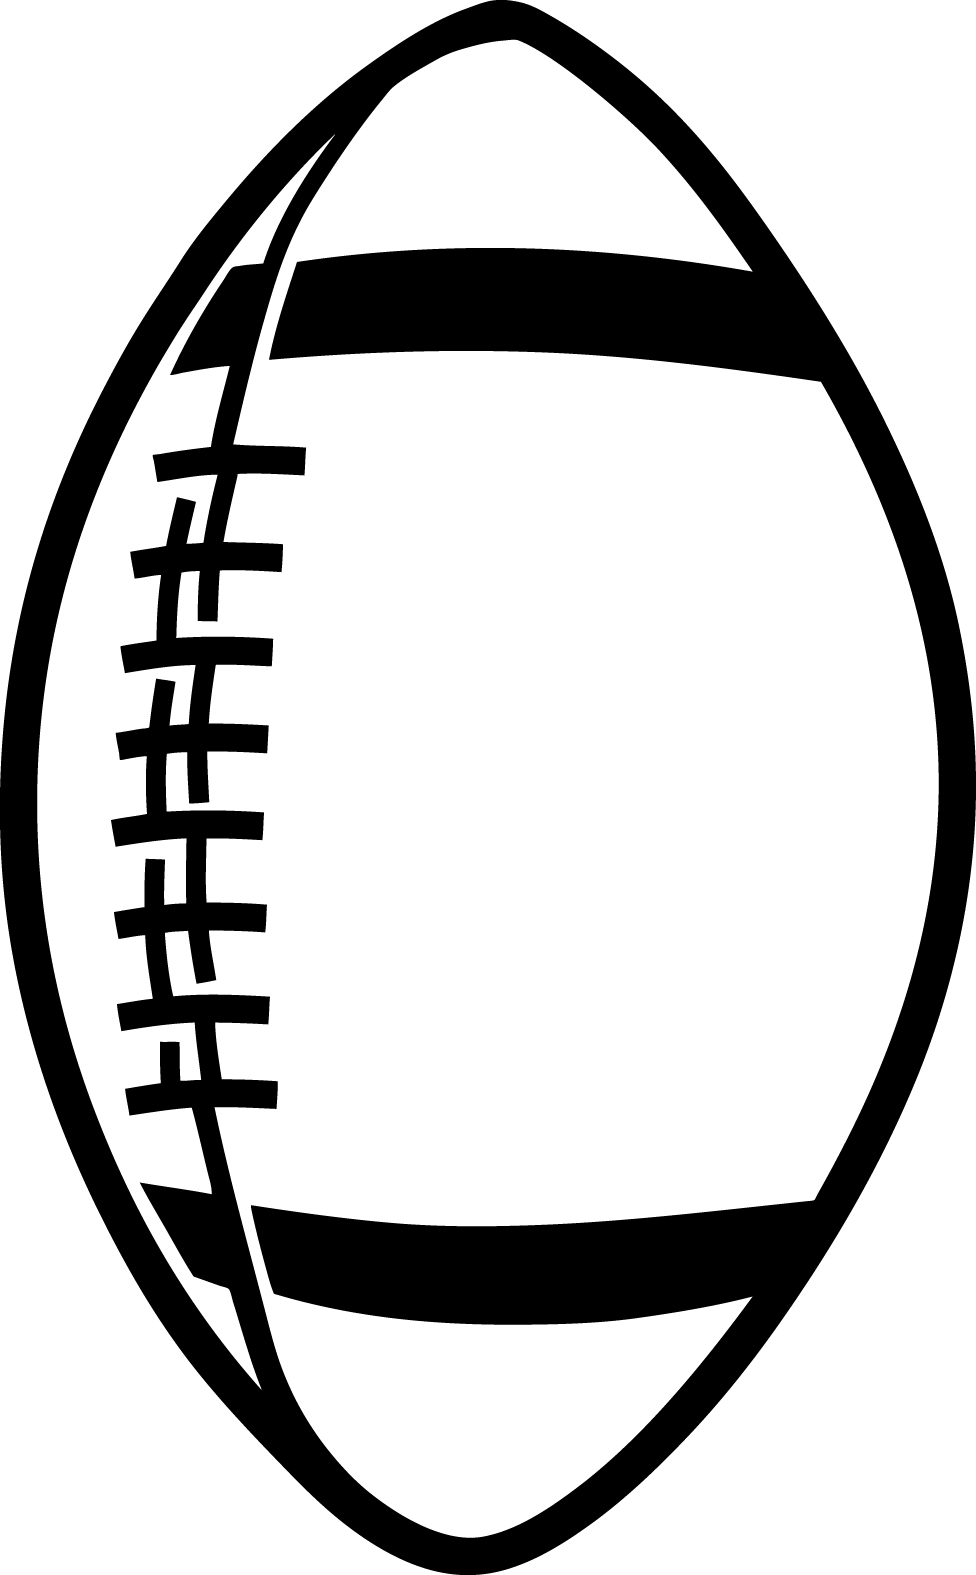 outline of a football